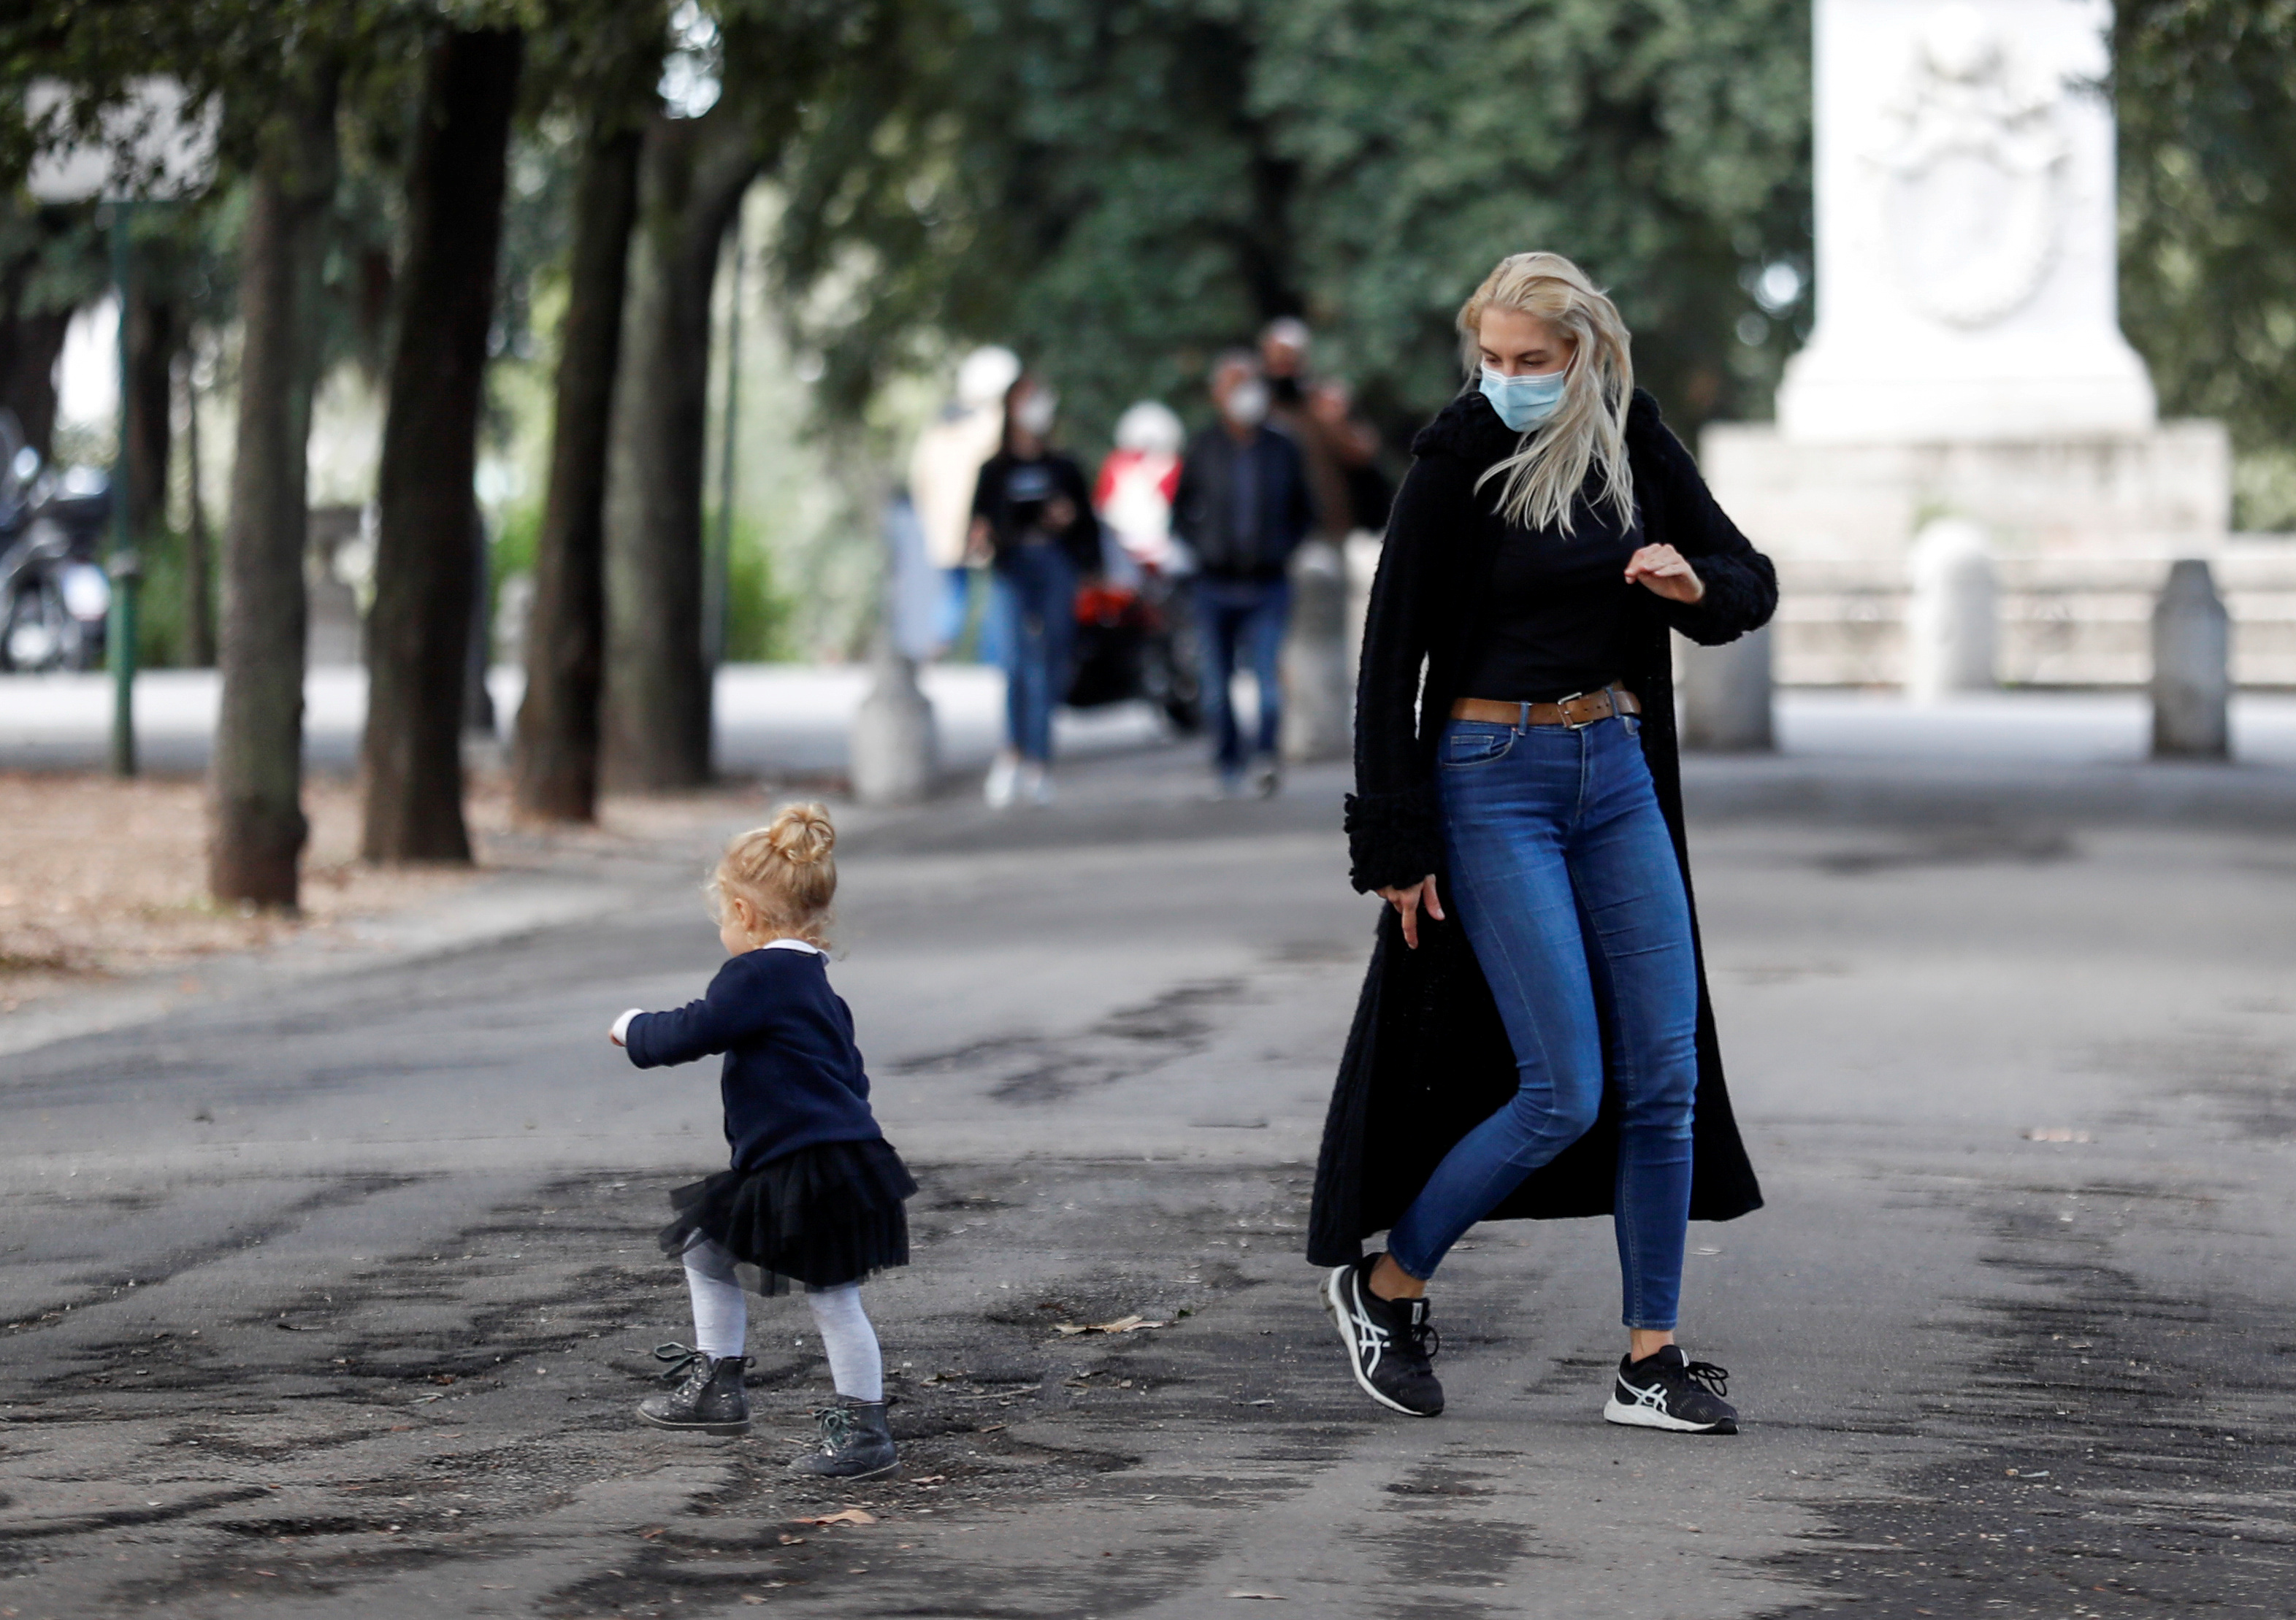 A woman wearing a protective mask plays with a child near Pincio Terrace, amid the outbreak of the coronavirus disease (COVID-19), in Rome, Italy October 13, 2020. REUTERS/Yara Nardi